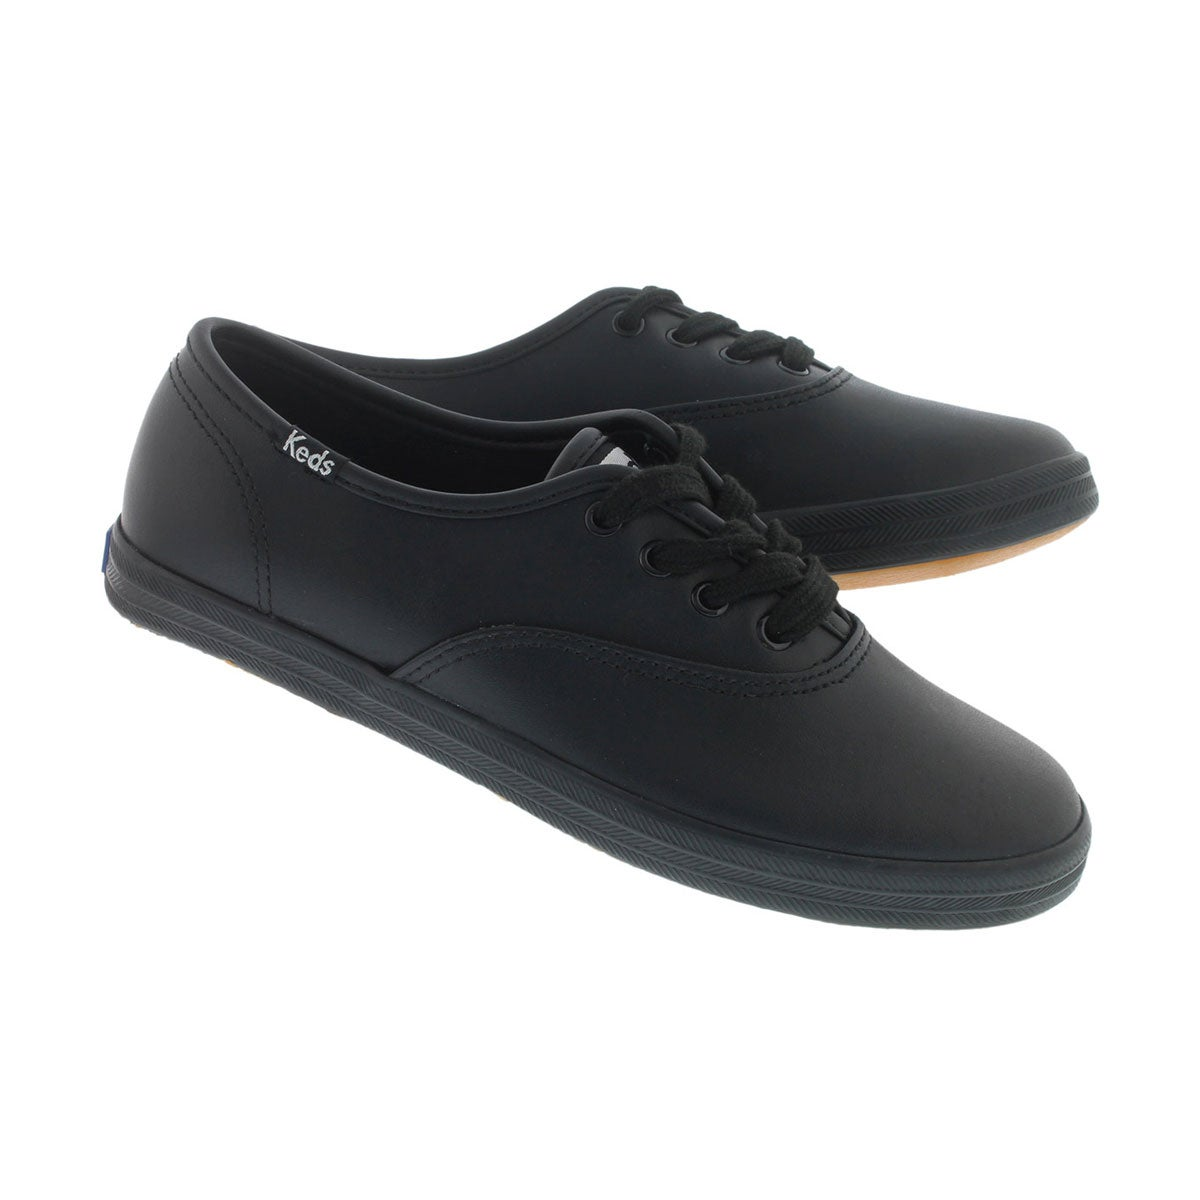 Girls' Champion black leather sneaker